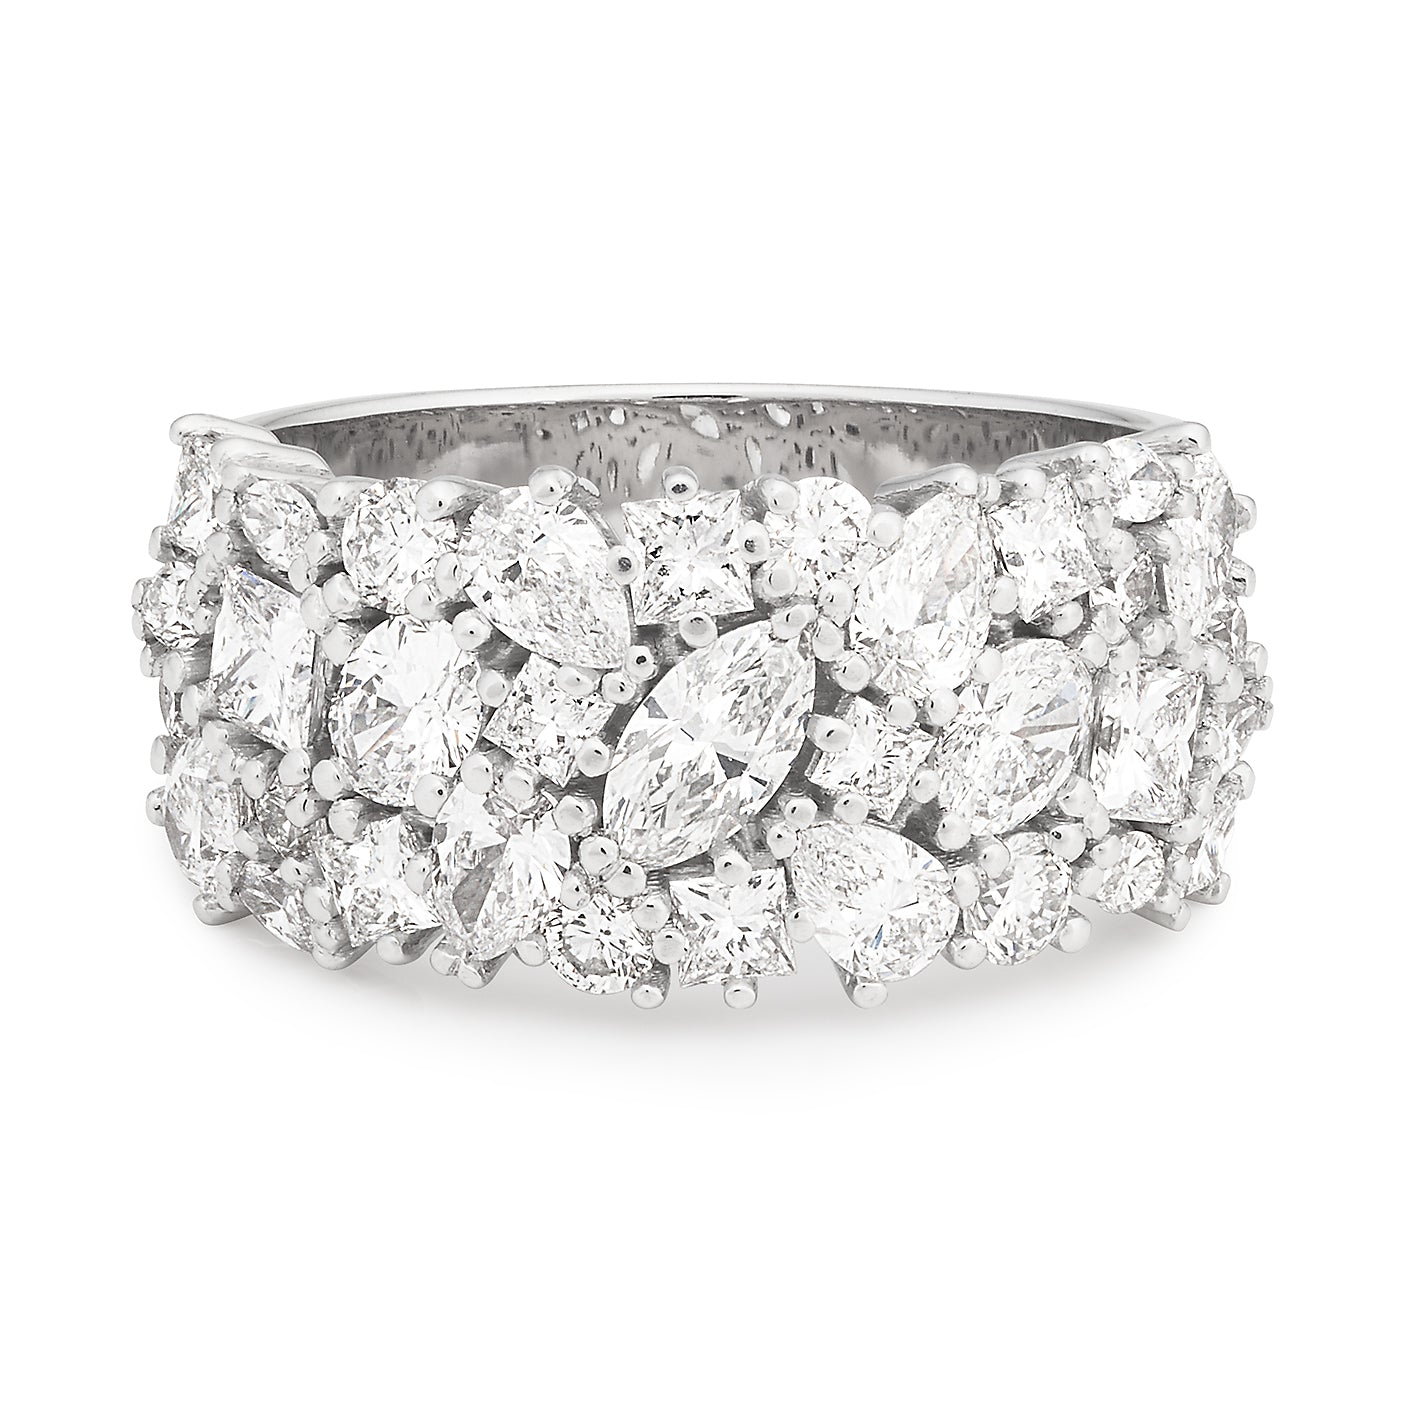 DIAMOND (SI GH) DRESS RING IN 18CT WHITE GOLD TDW 2.24CT